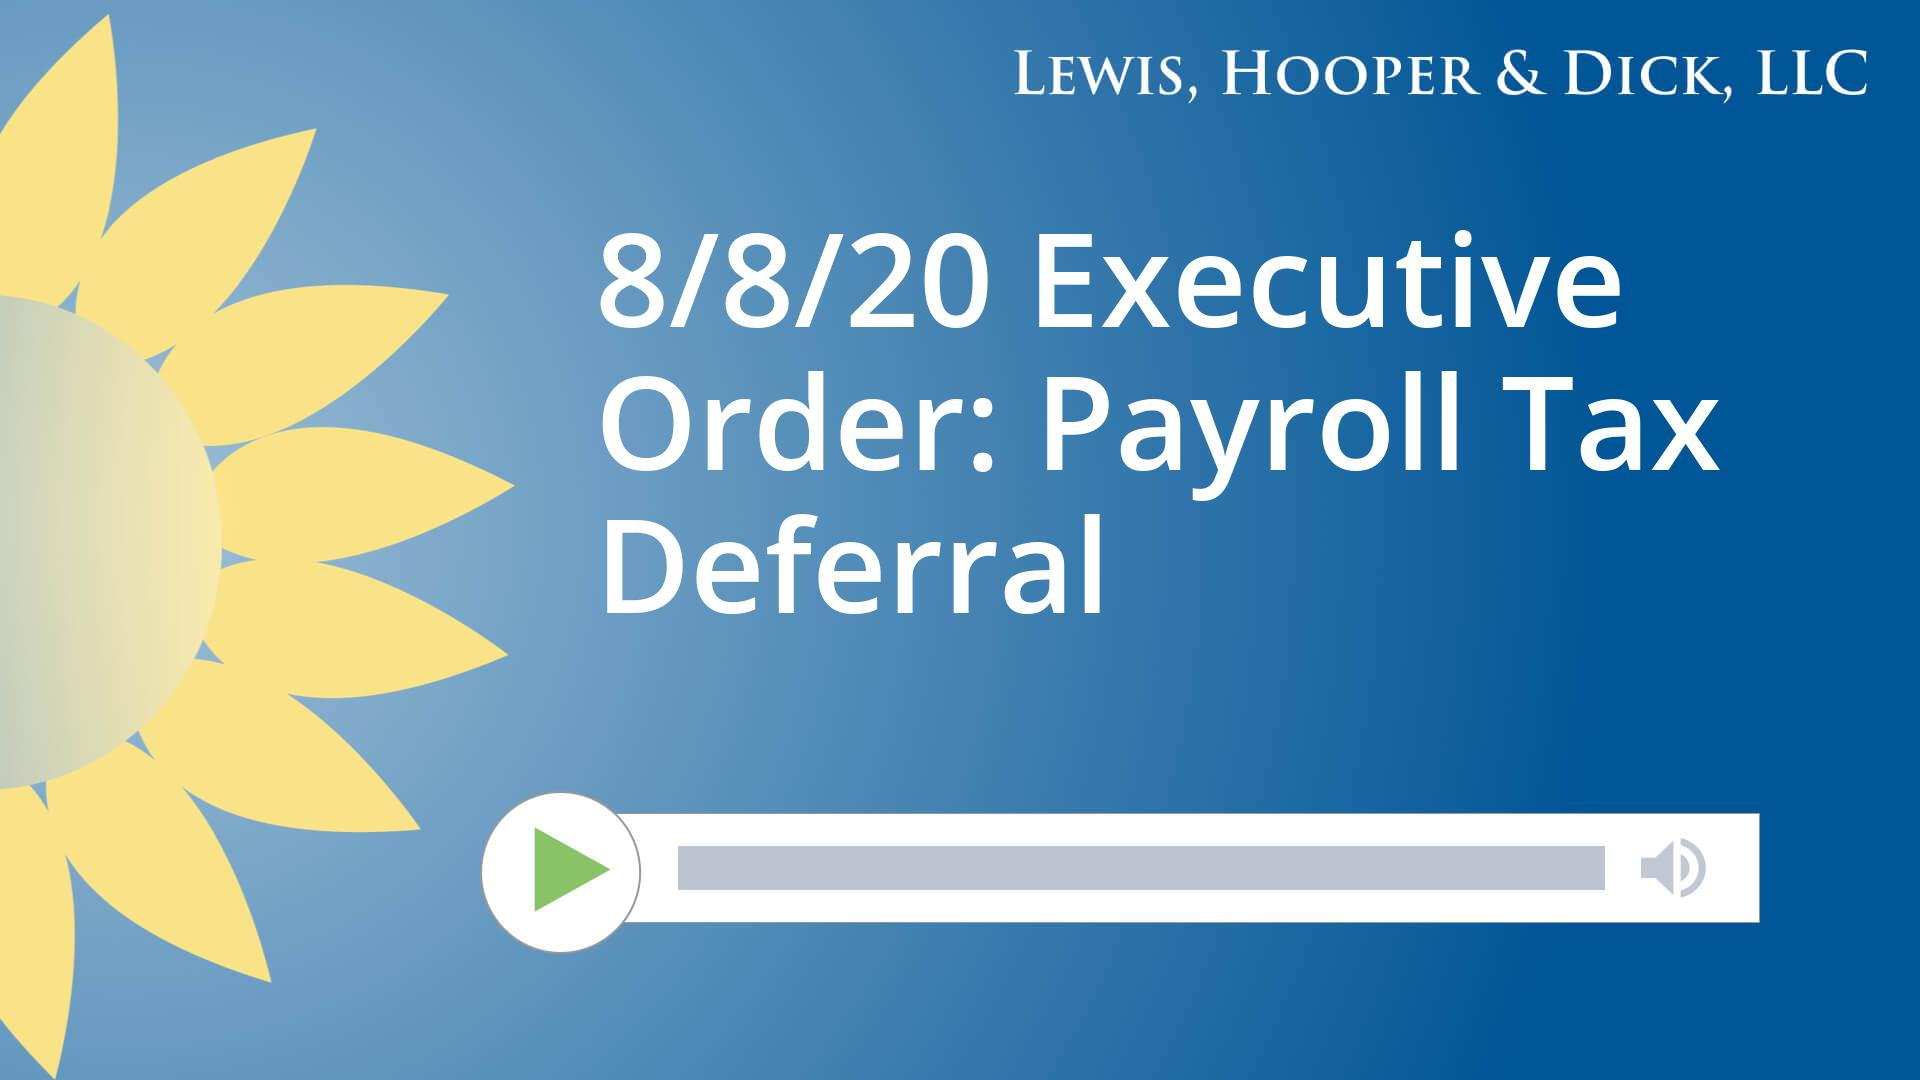 8/8/20 Executive Order: Payroll Tax Deferral